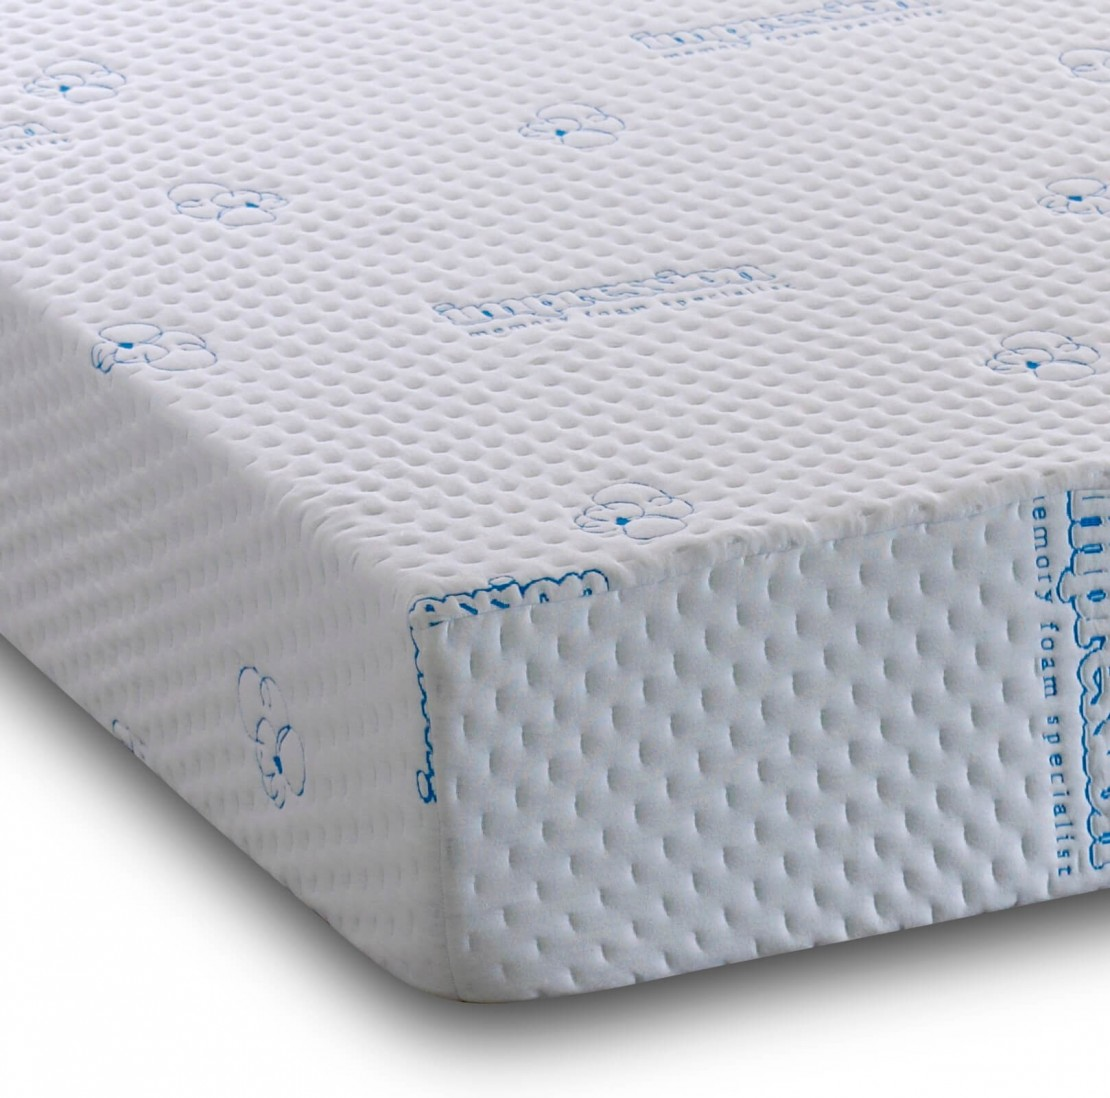 /_images/product-photos/visco-therapy-visco-3000-hd-memory-foam-firm-mattress-a.jpg